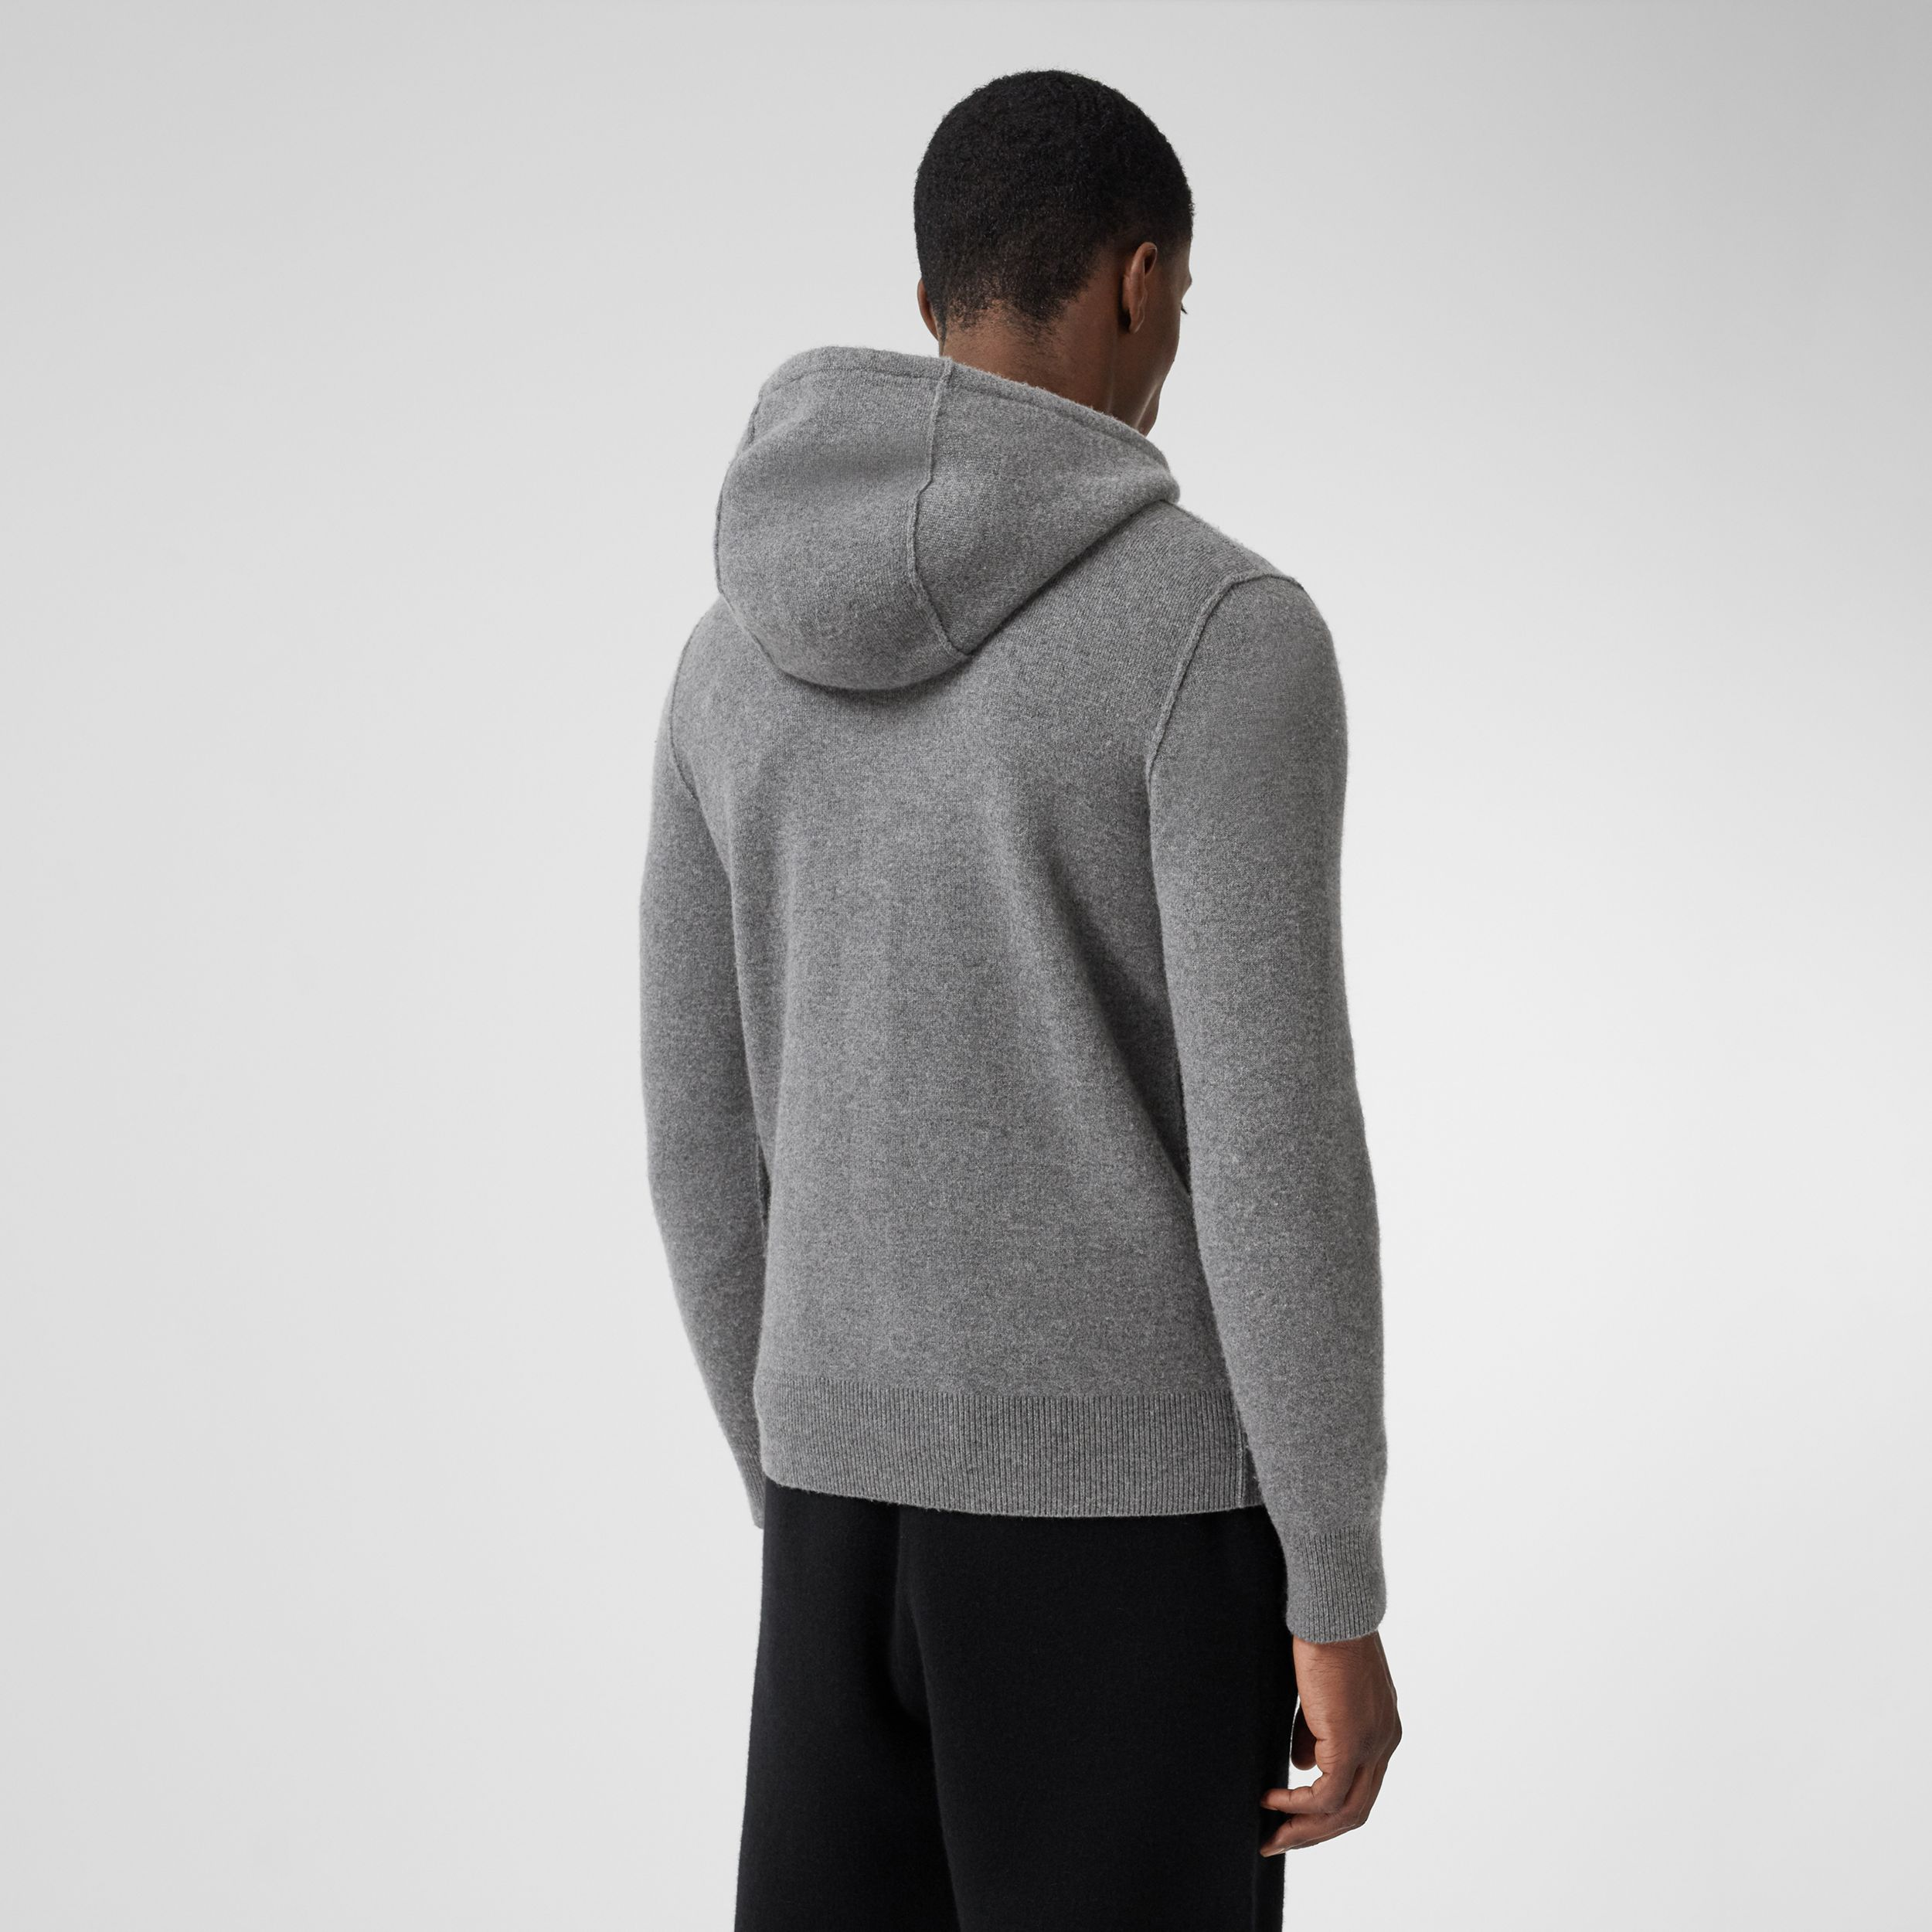 Monogram Motif Cashmere Blend Hooded Top in Mid Grey Melange - Men | Burberry - 3